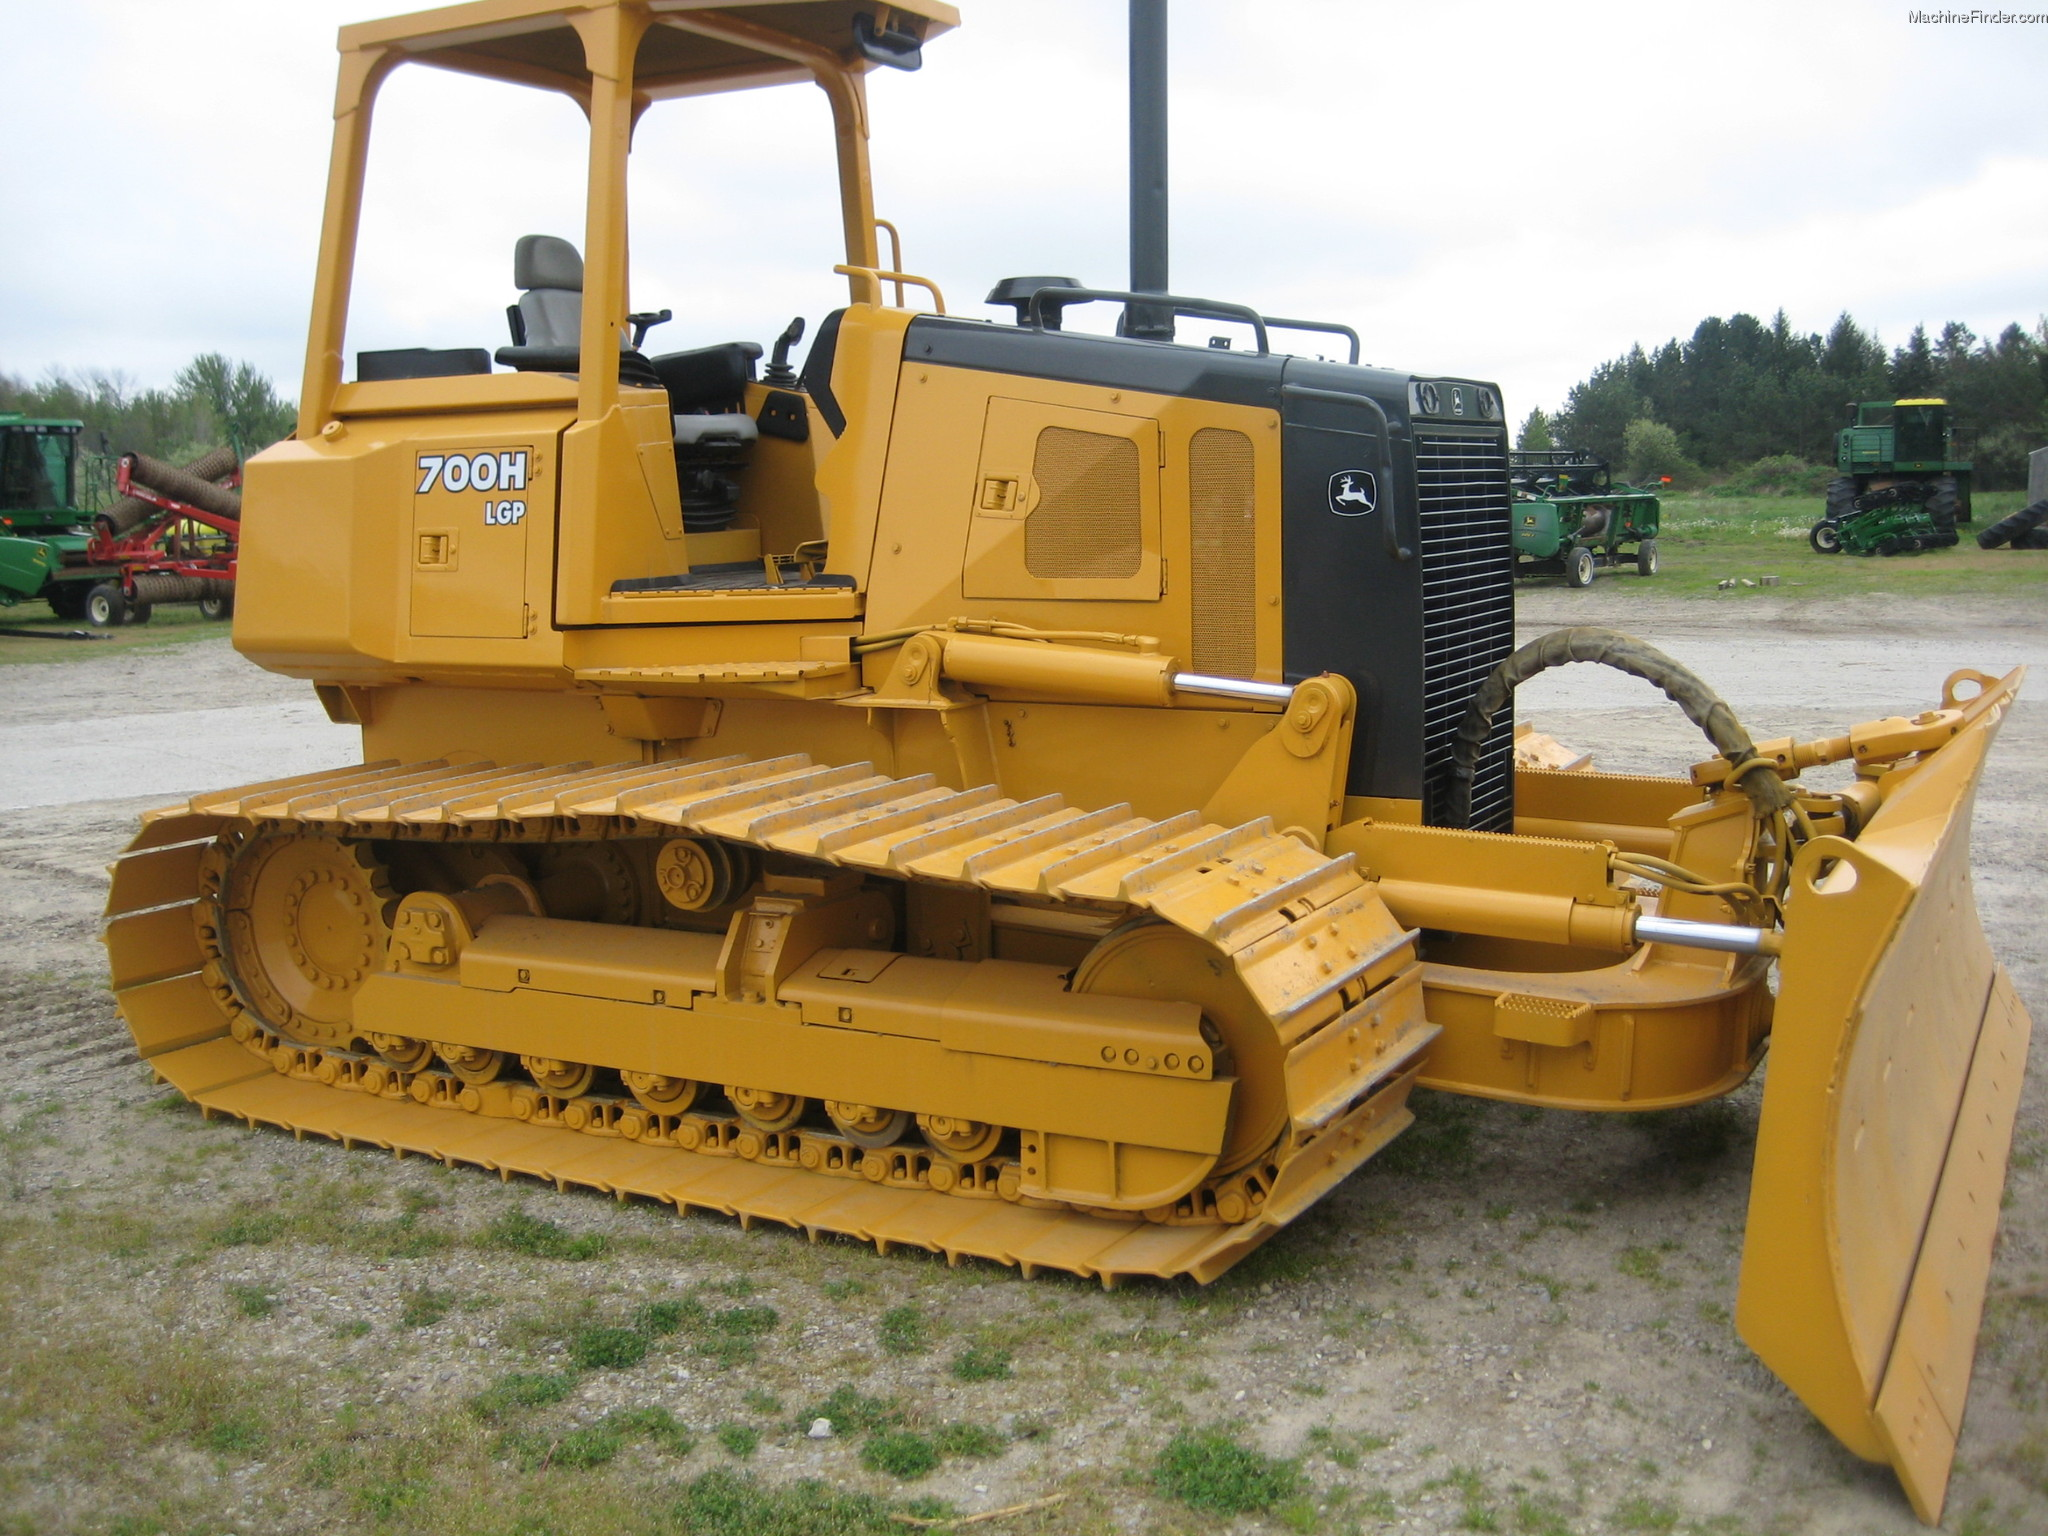 John Deere Bulldozer Price Used http://www.machinefinder.com/ww/en-US/machine/2082822